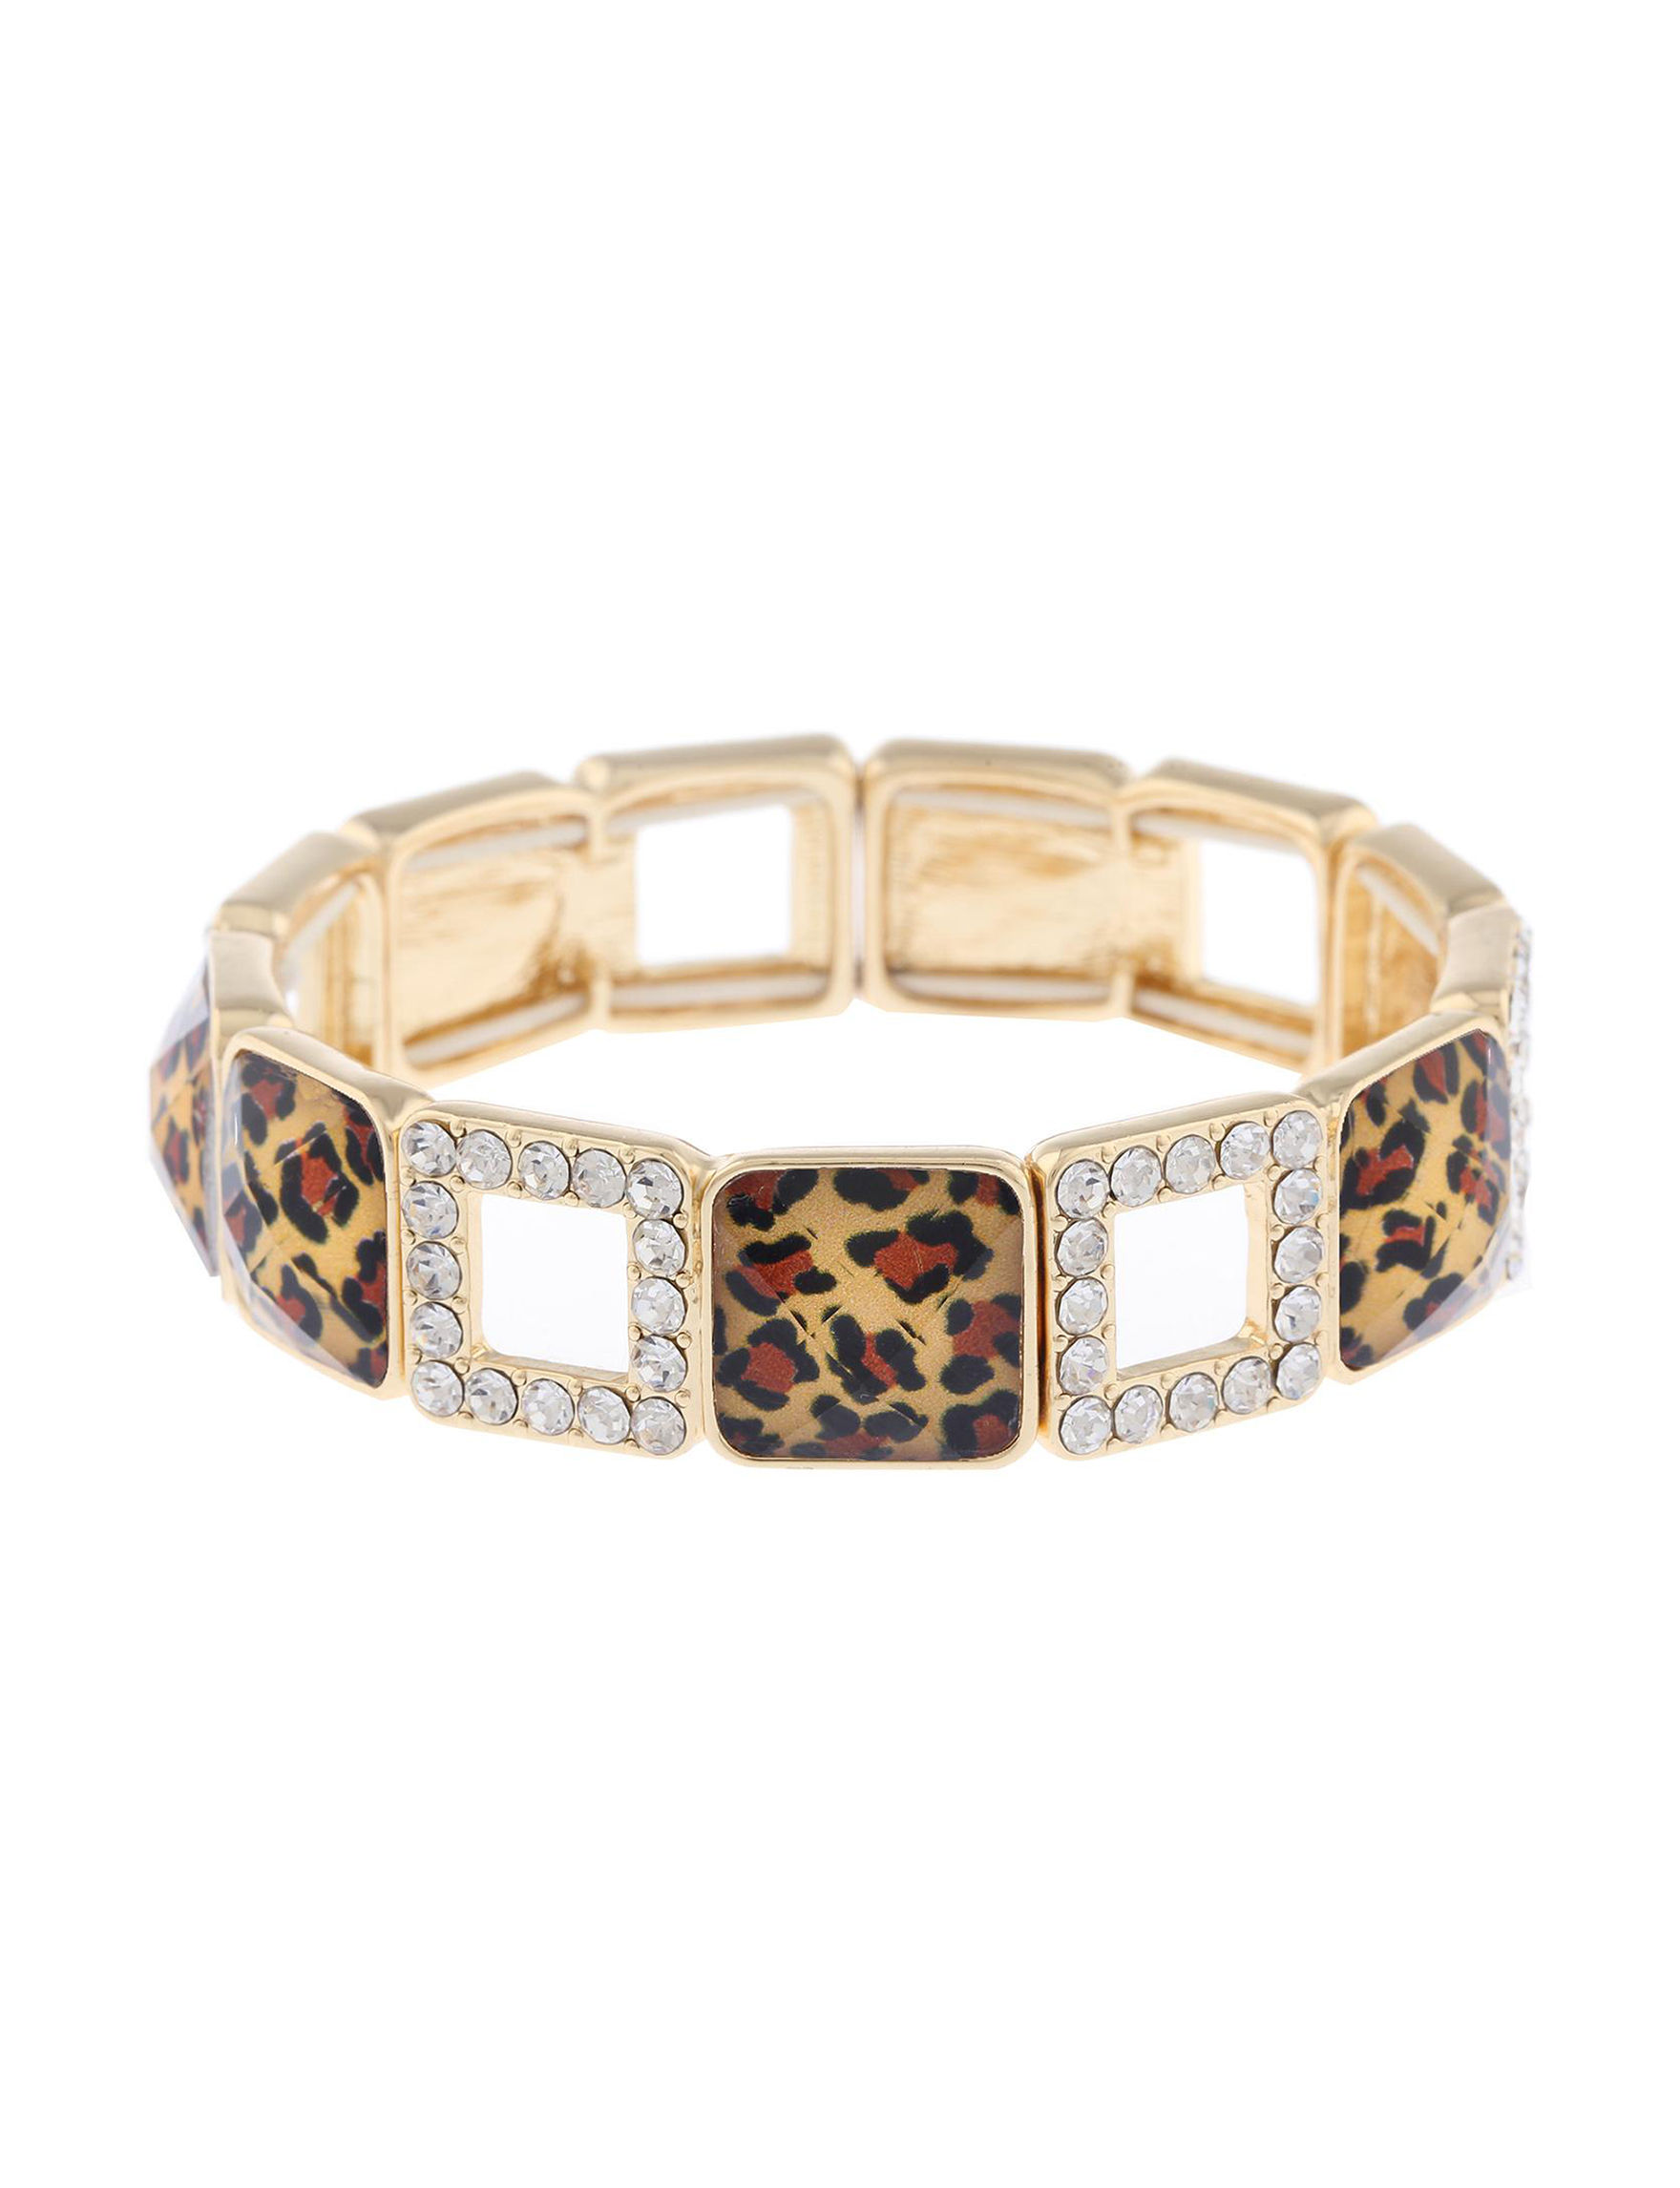 Gloria Vanderbilt Gold / Leopard / Crystal Bracelets Fashion Jewelry